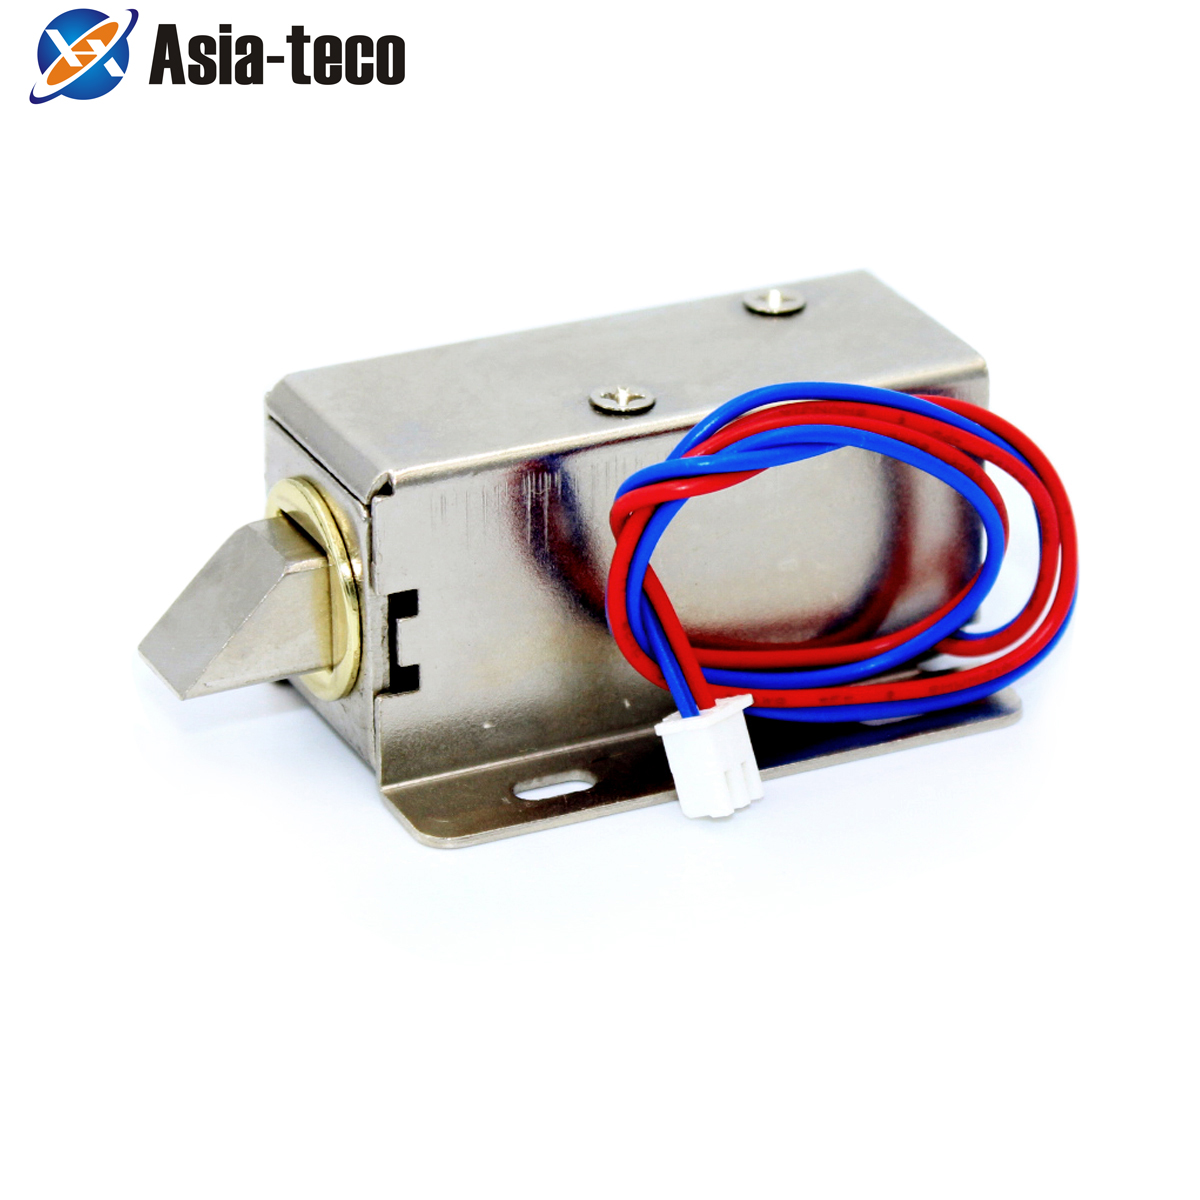 Lock Gate Assembly-Solenoid Catch-Door Access-Control-Lock 12V 1-Order Release title=